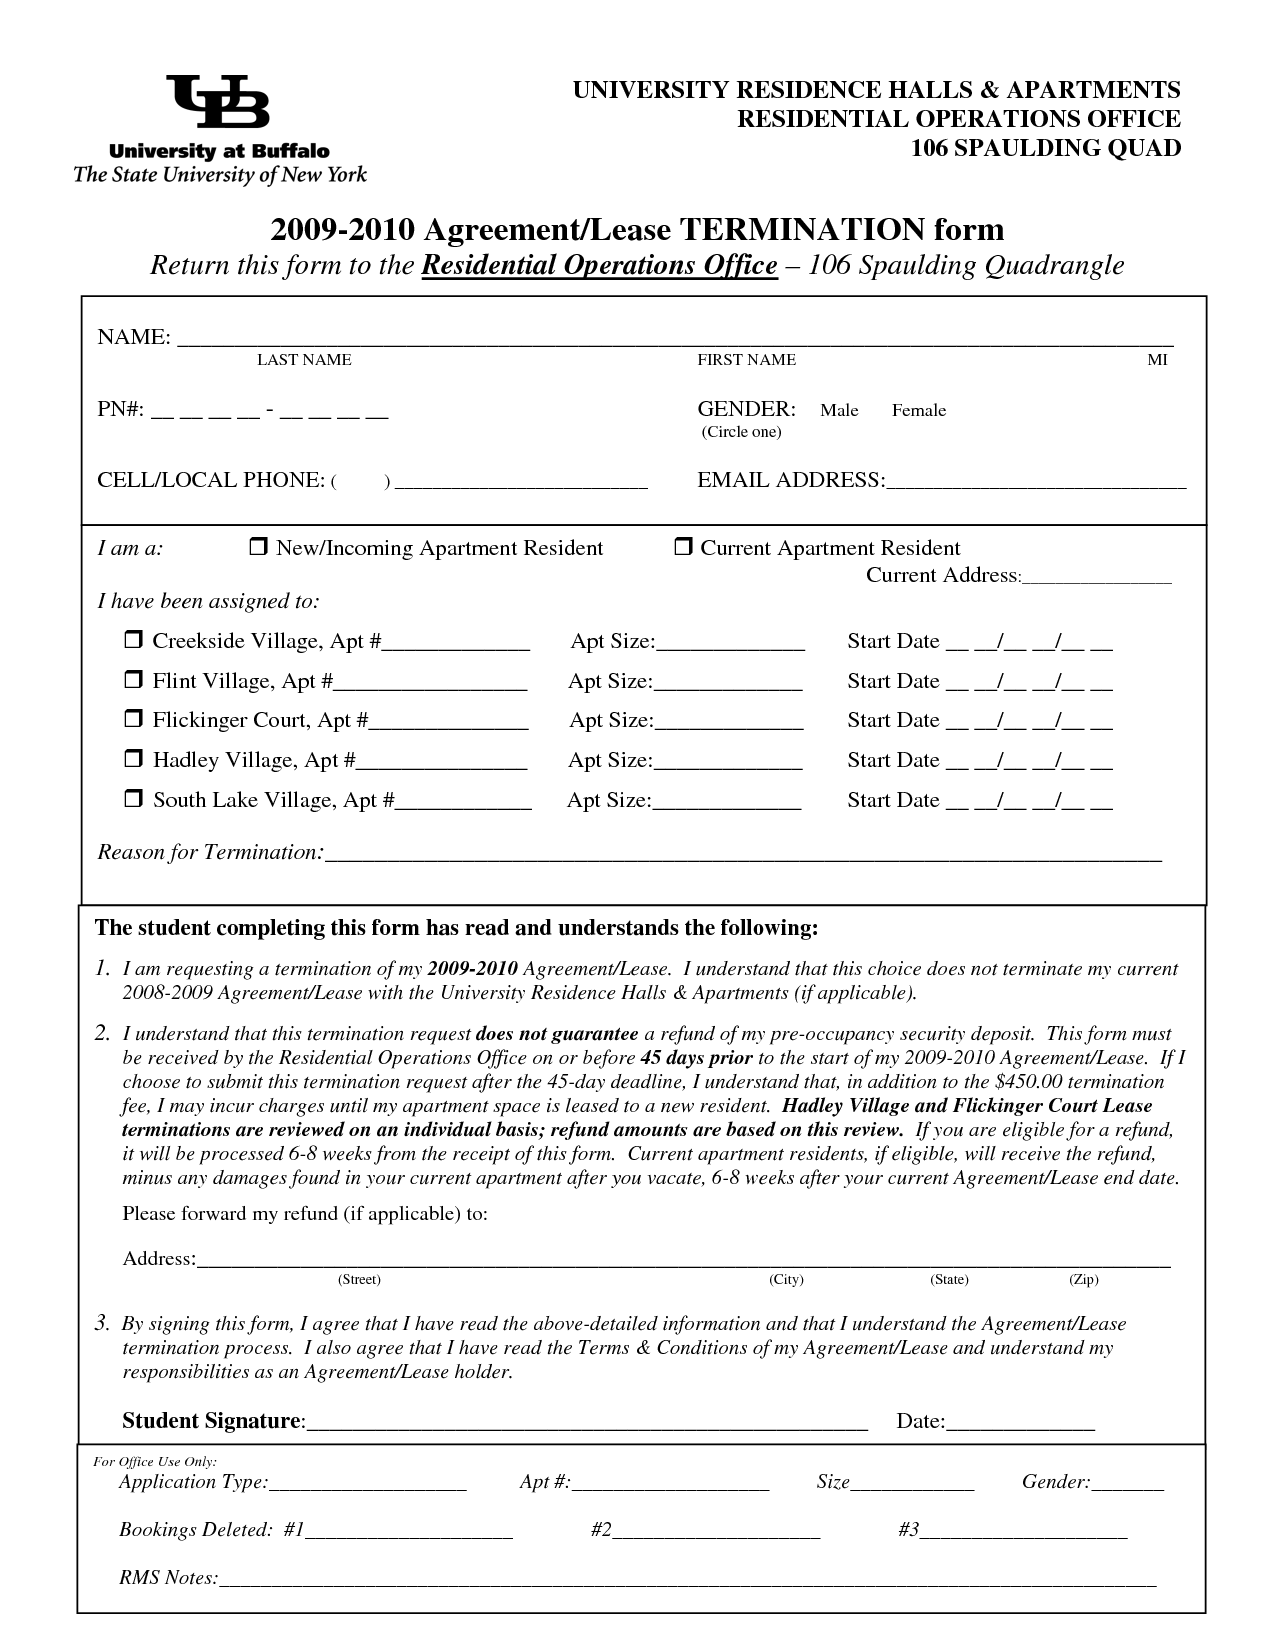 Lease Termination Forms by jessicaDerusso - termination of lease ...